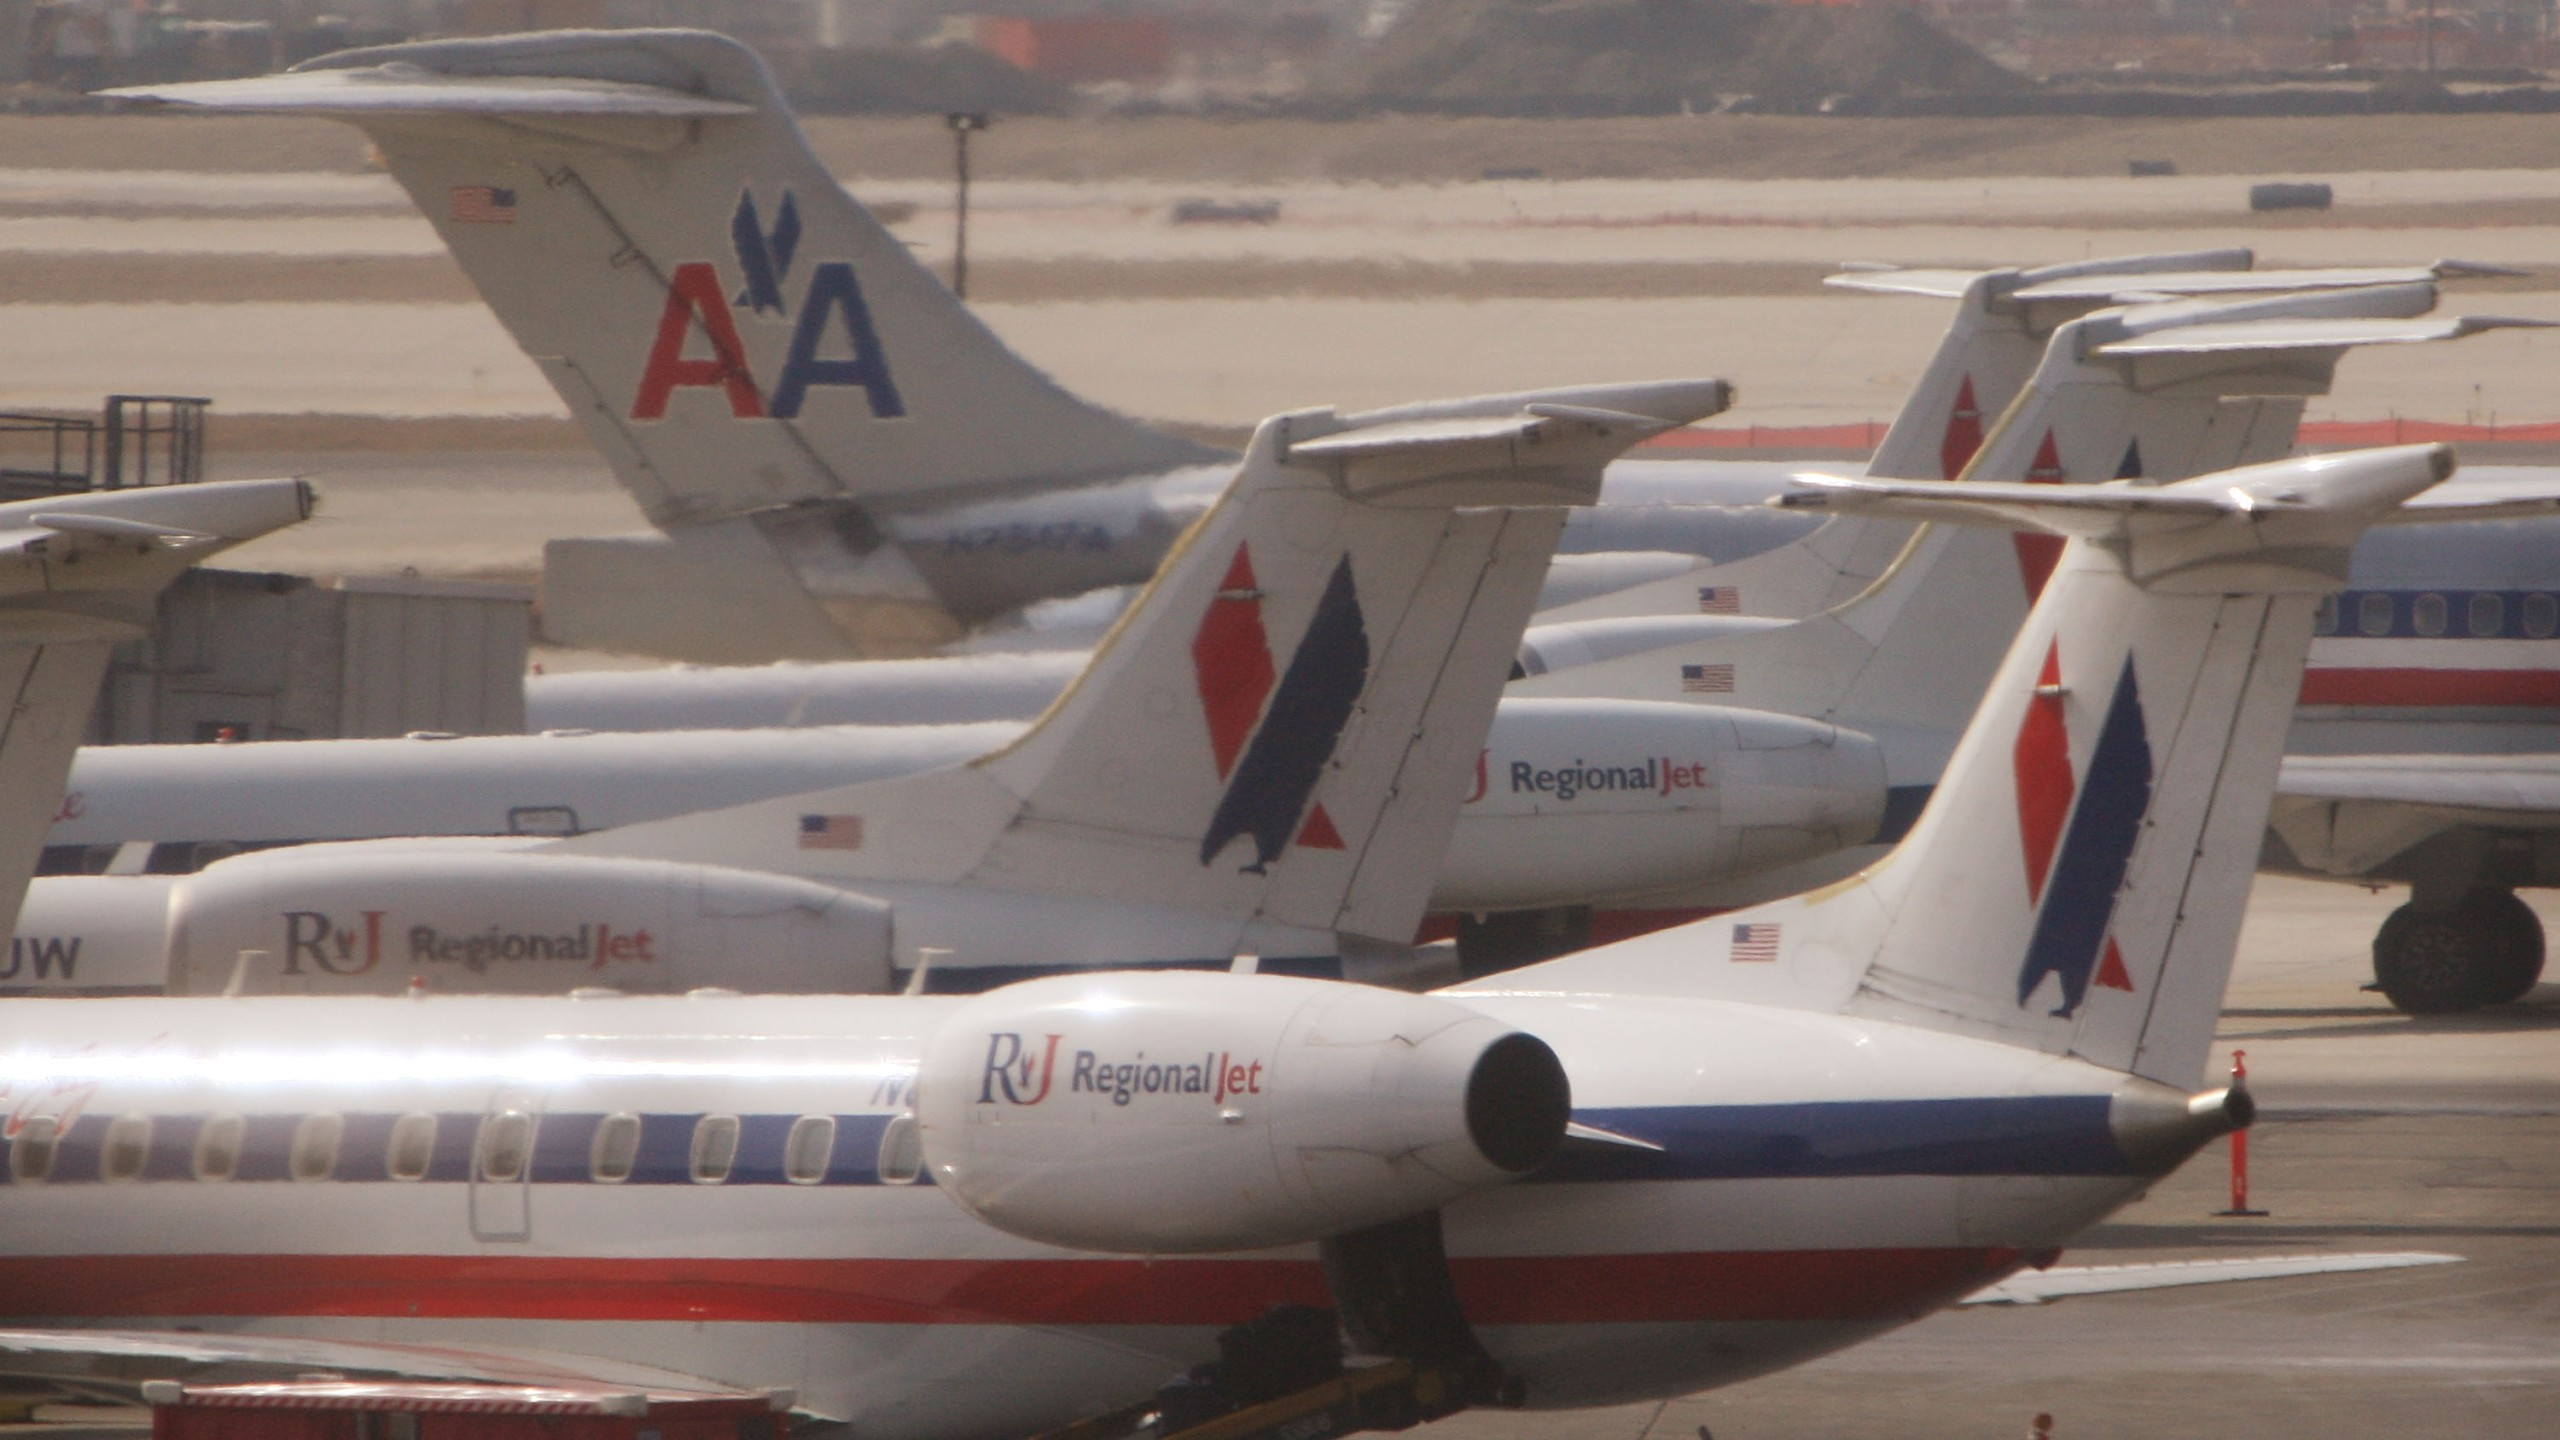 An American Airlines jet taxis past American Eagle jets in a March 2008 file photo. (Credit: Scott Olson/Getty Images)